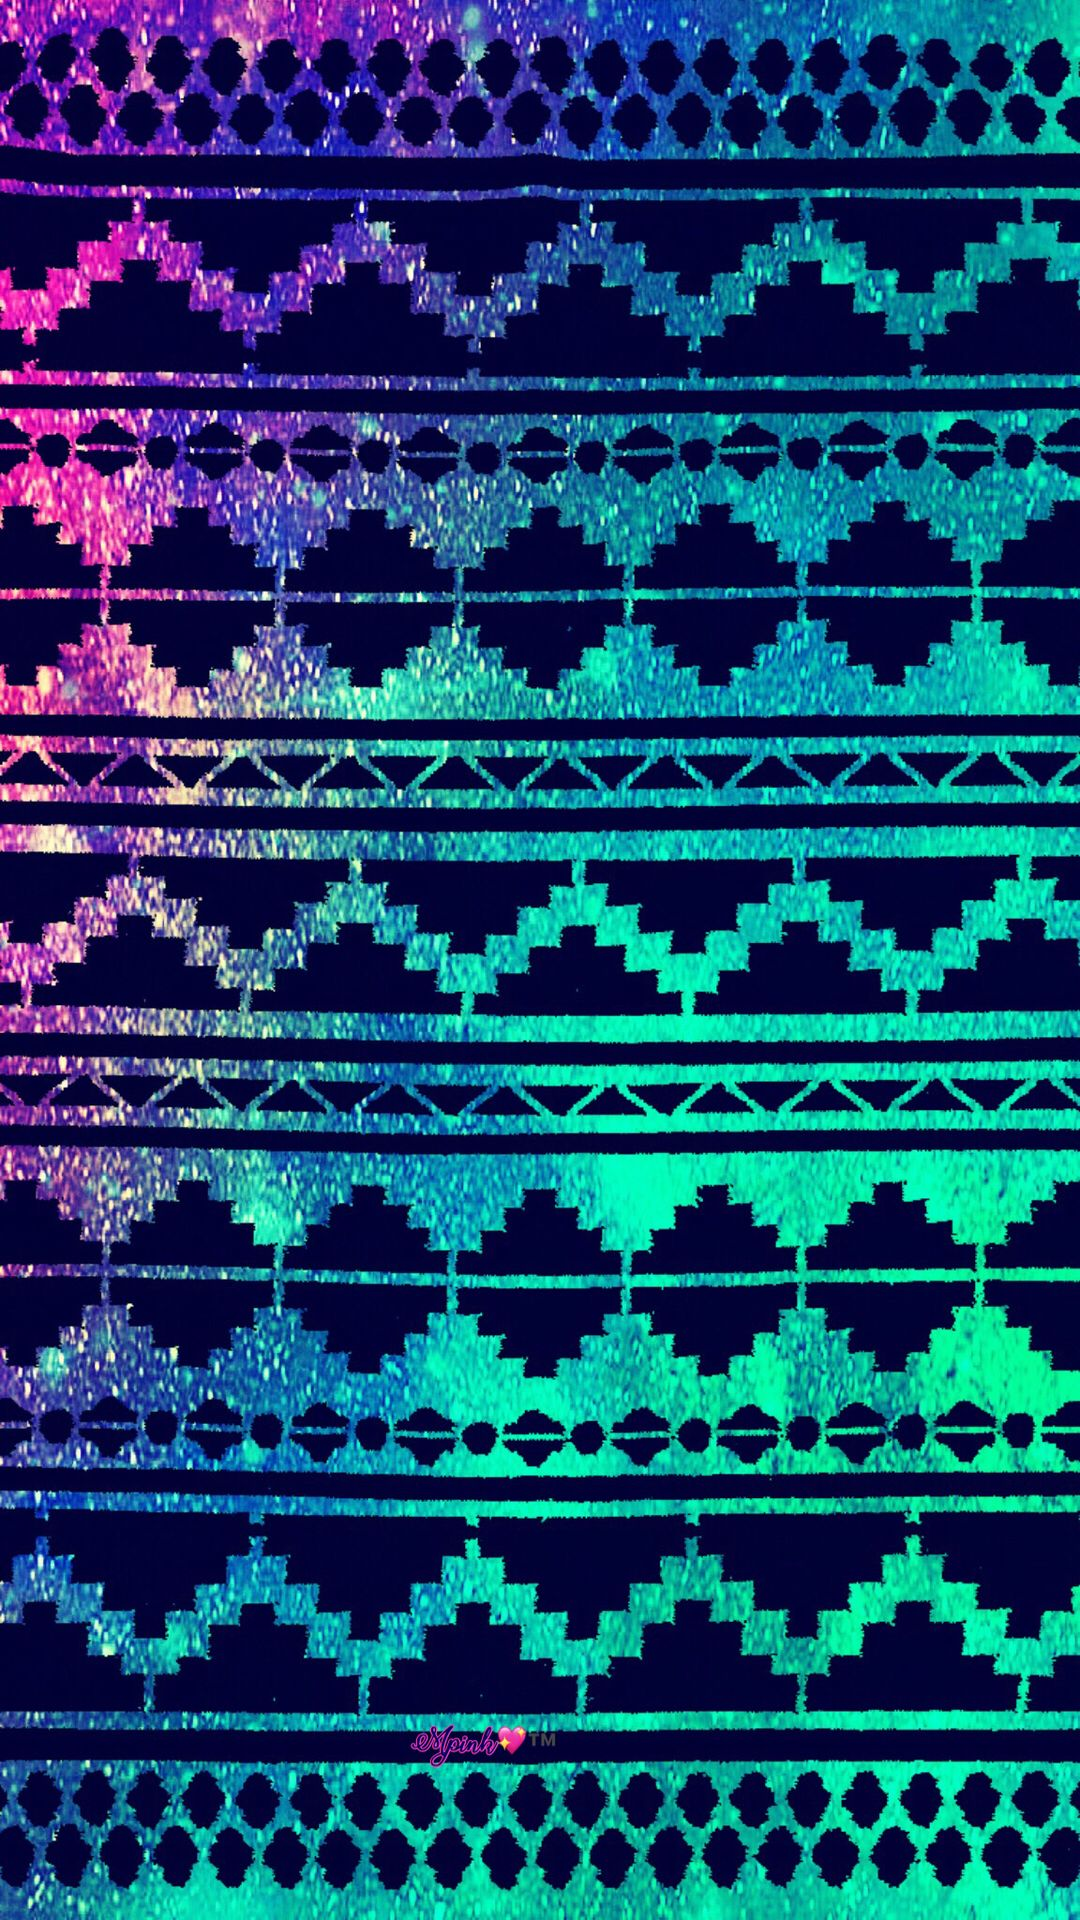 Perfect Tribal Galaxy Wallpaper Androidwallpaper Iphonewallpaper Wallpape Ipad Wallpaper Watercolor Iphone Homescreen Wallpaper Iphone Wallpaper Quotes Love